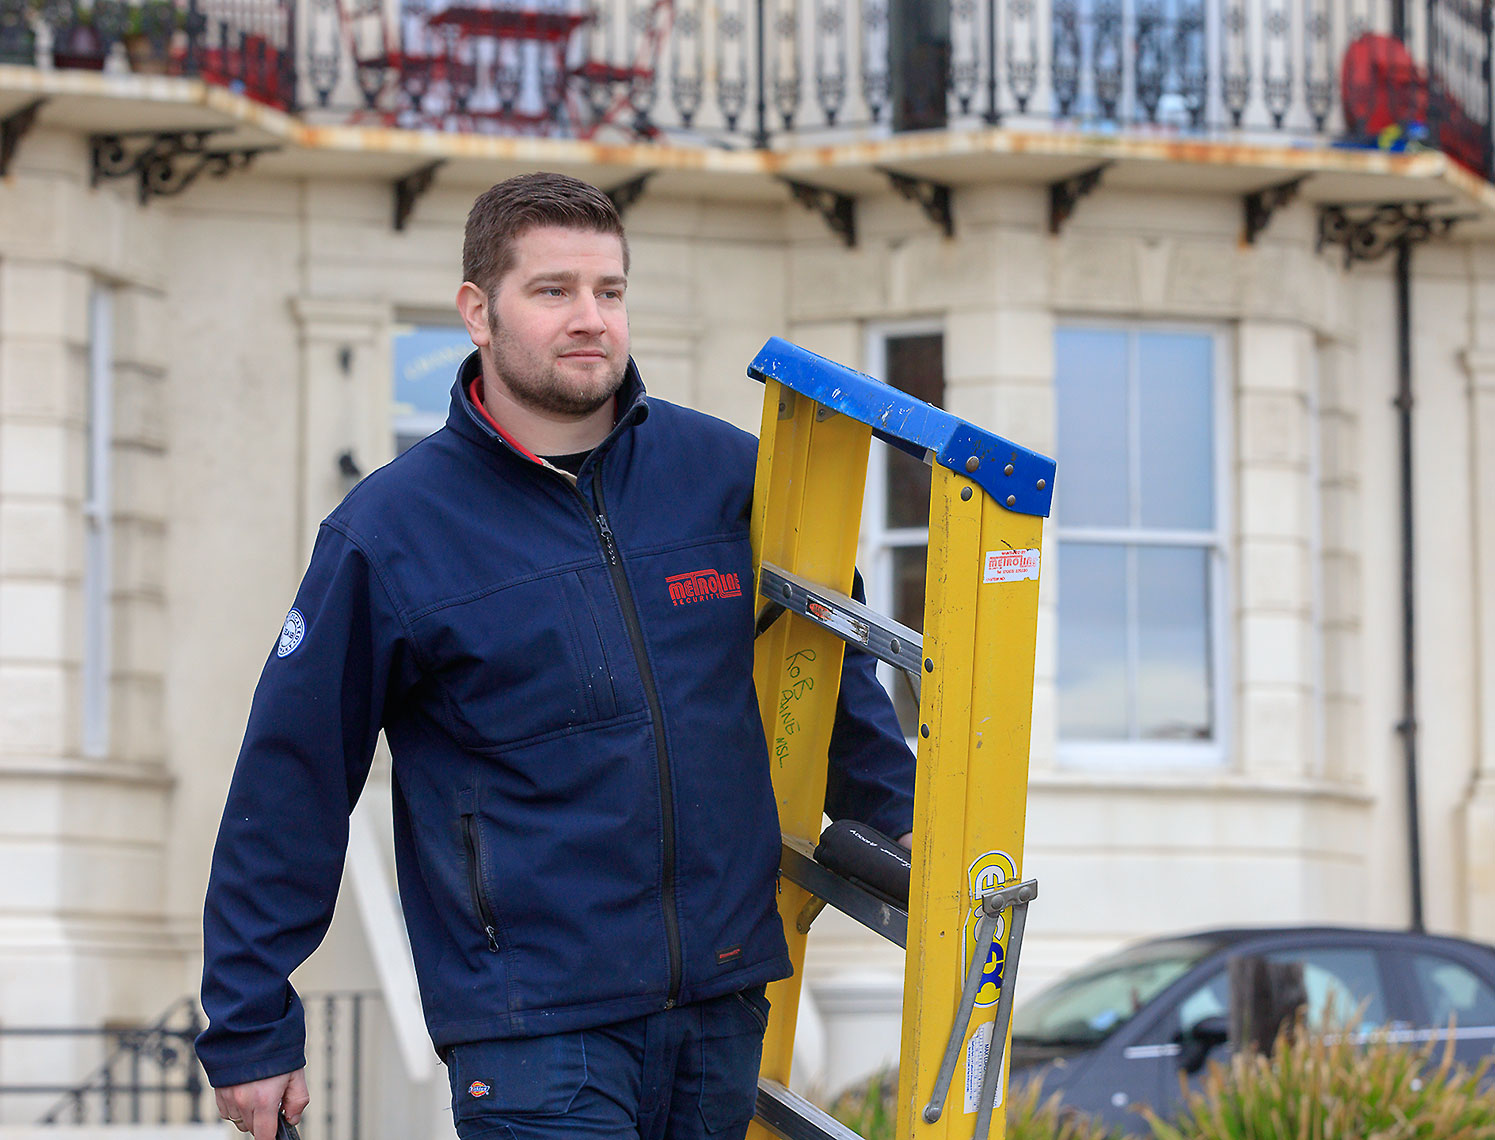 Young man with blue jacket carrying yellow ladder outside of building